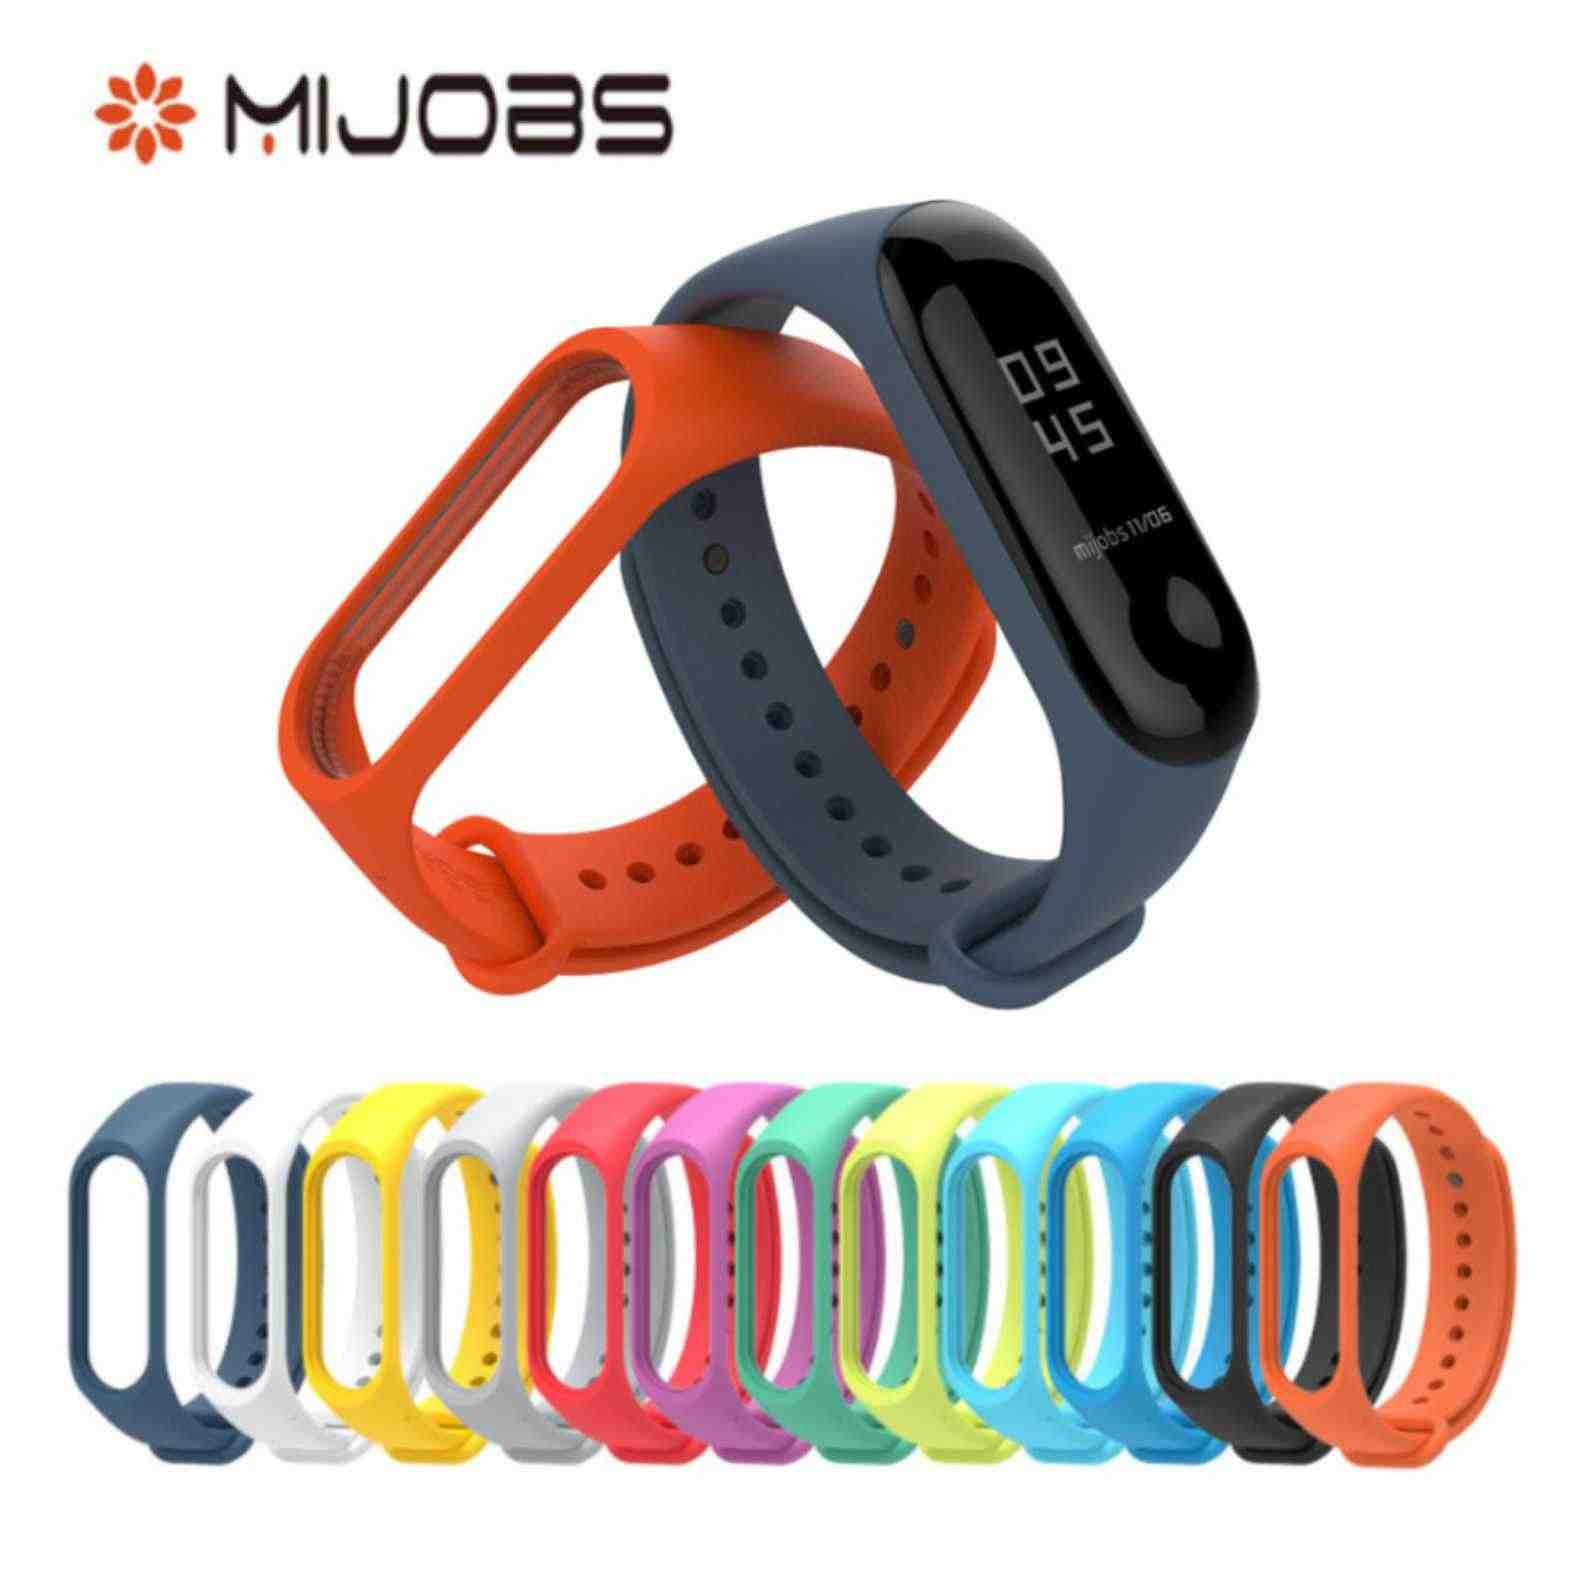 Mijobs Belt Strap Replacement For Xiaomi Mi Band 3 Smart Band Accessories For Xiaomi Miband 3 Smart Wristband Strap in Stock